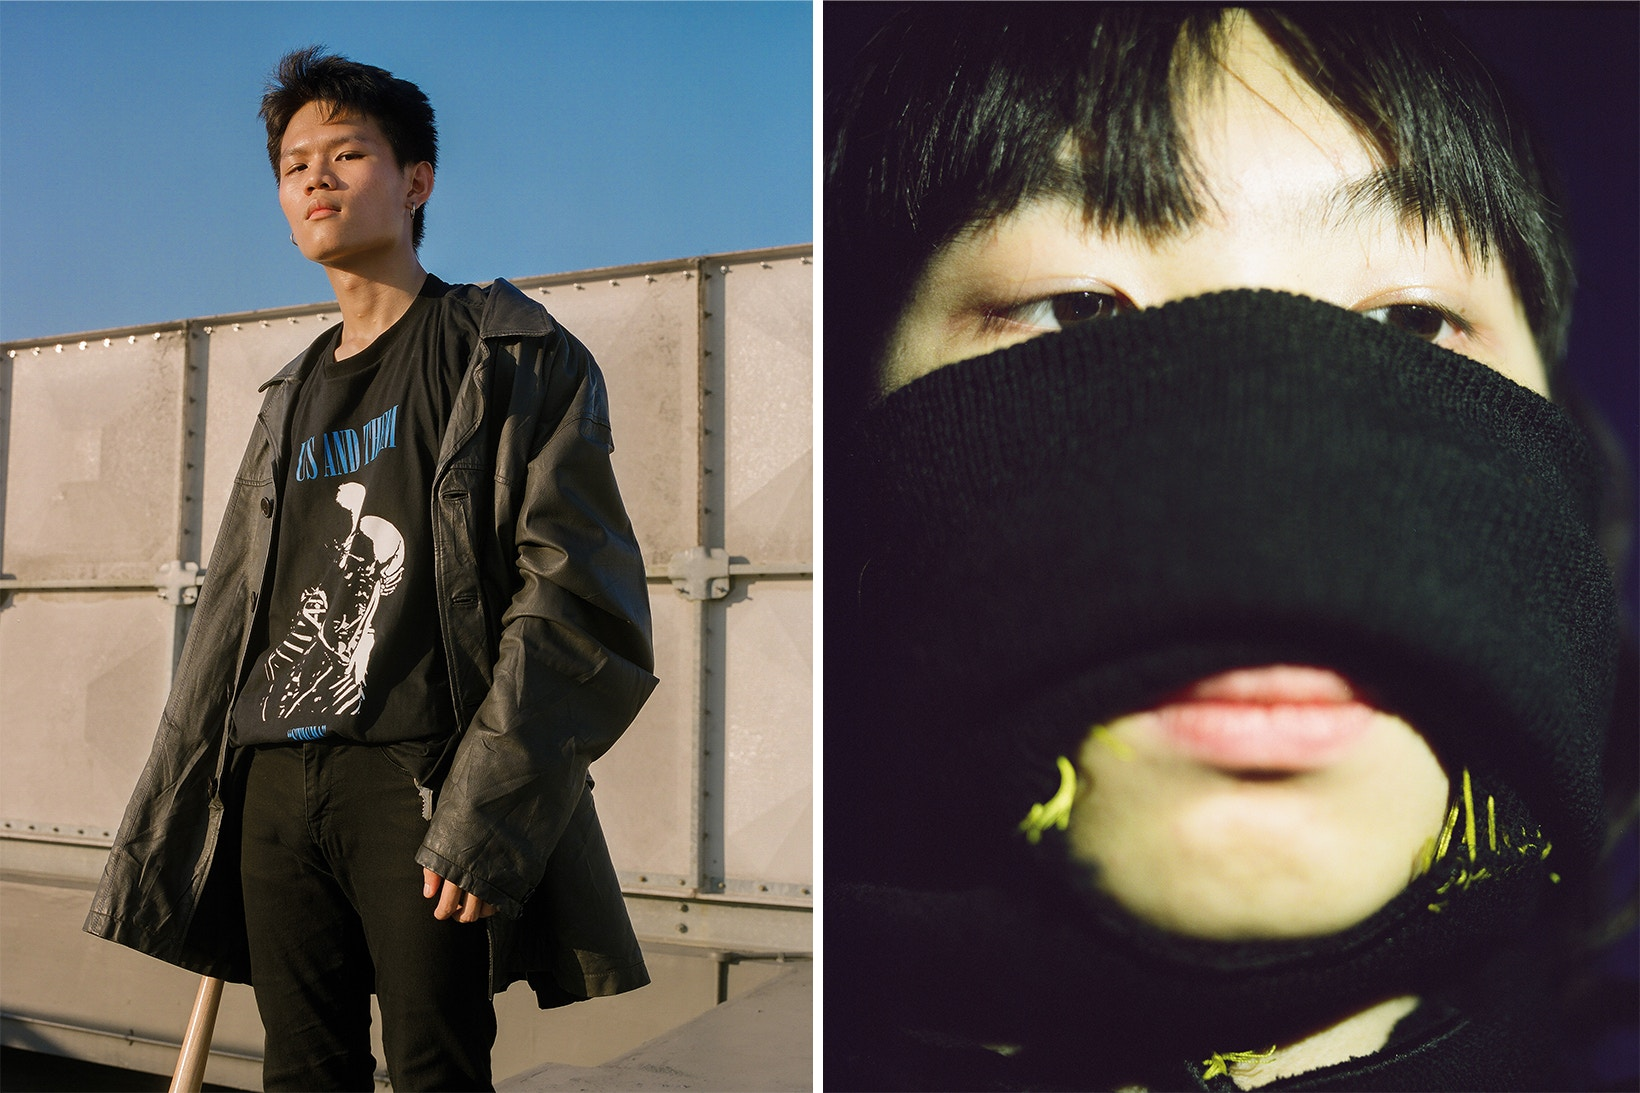 Dover-Street-Market-Youths-In-Balaclava-fashion-3.jpg